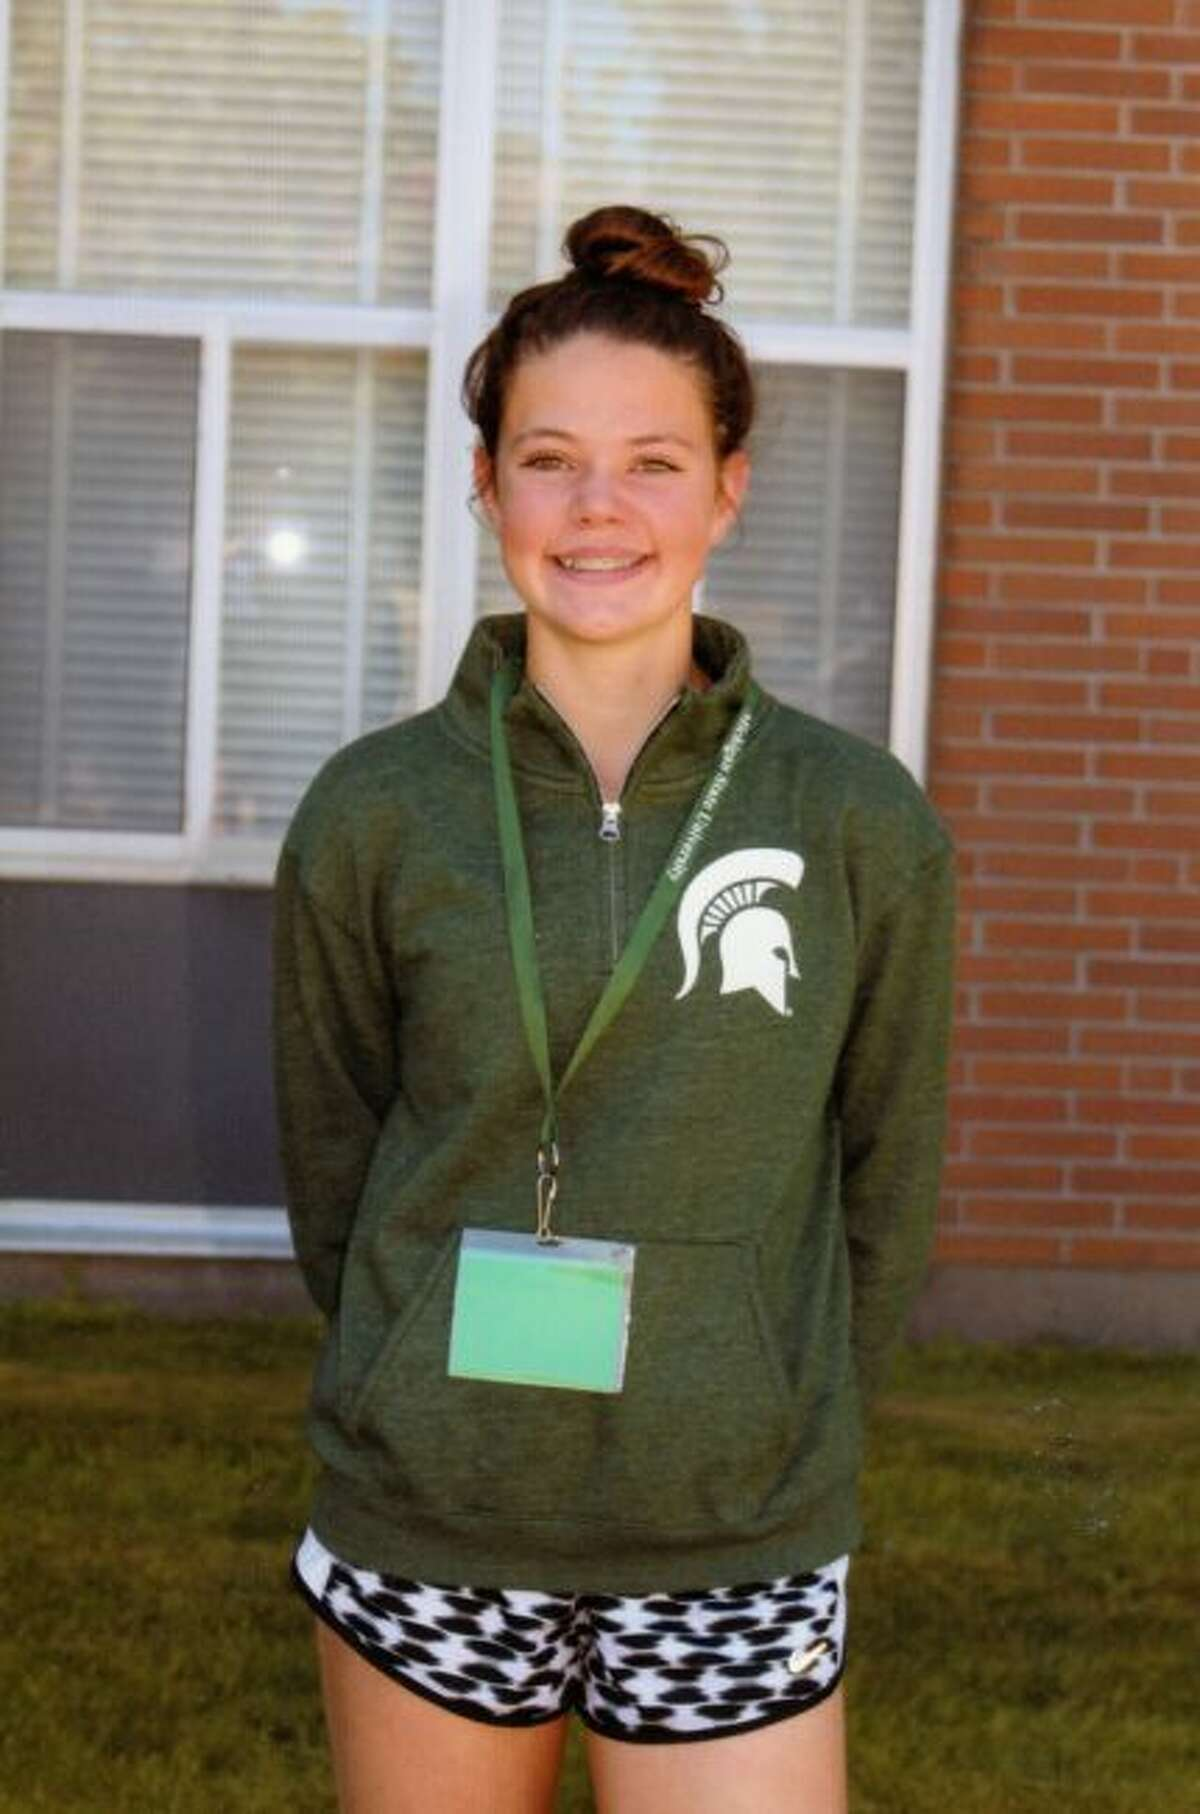 The Manistee Kiwanis Club awarded Emily Gardner a scholarship to attend Exploration Days at Michigan State University. During the camp she studied dairy goat judging and bunny basics.